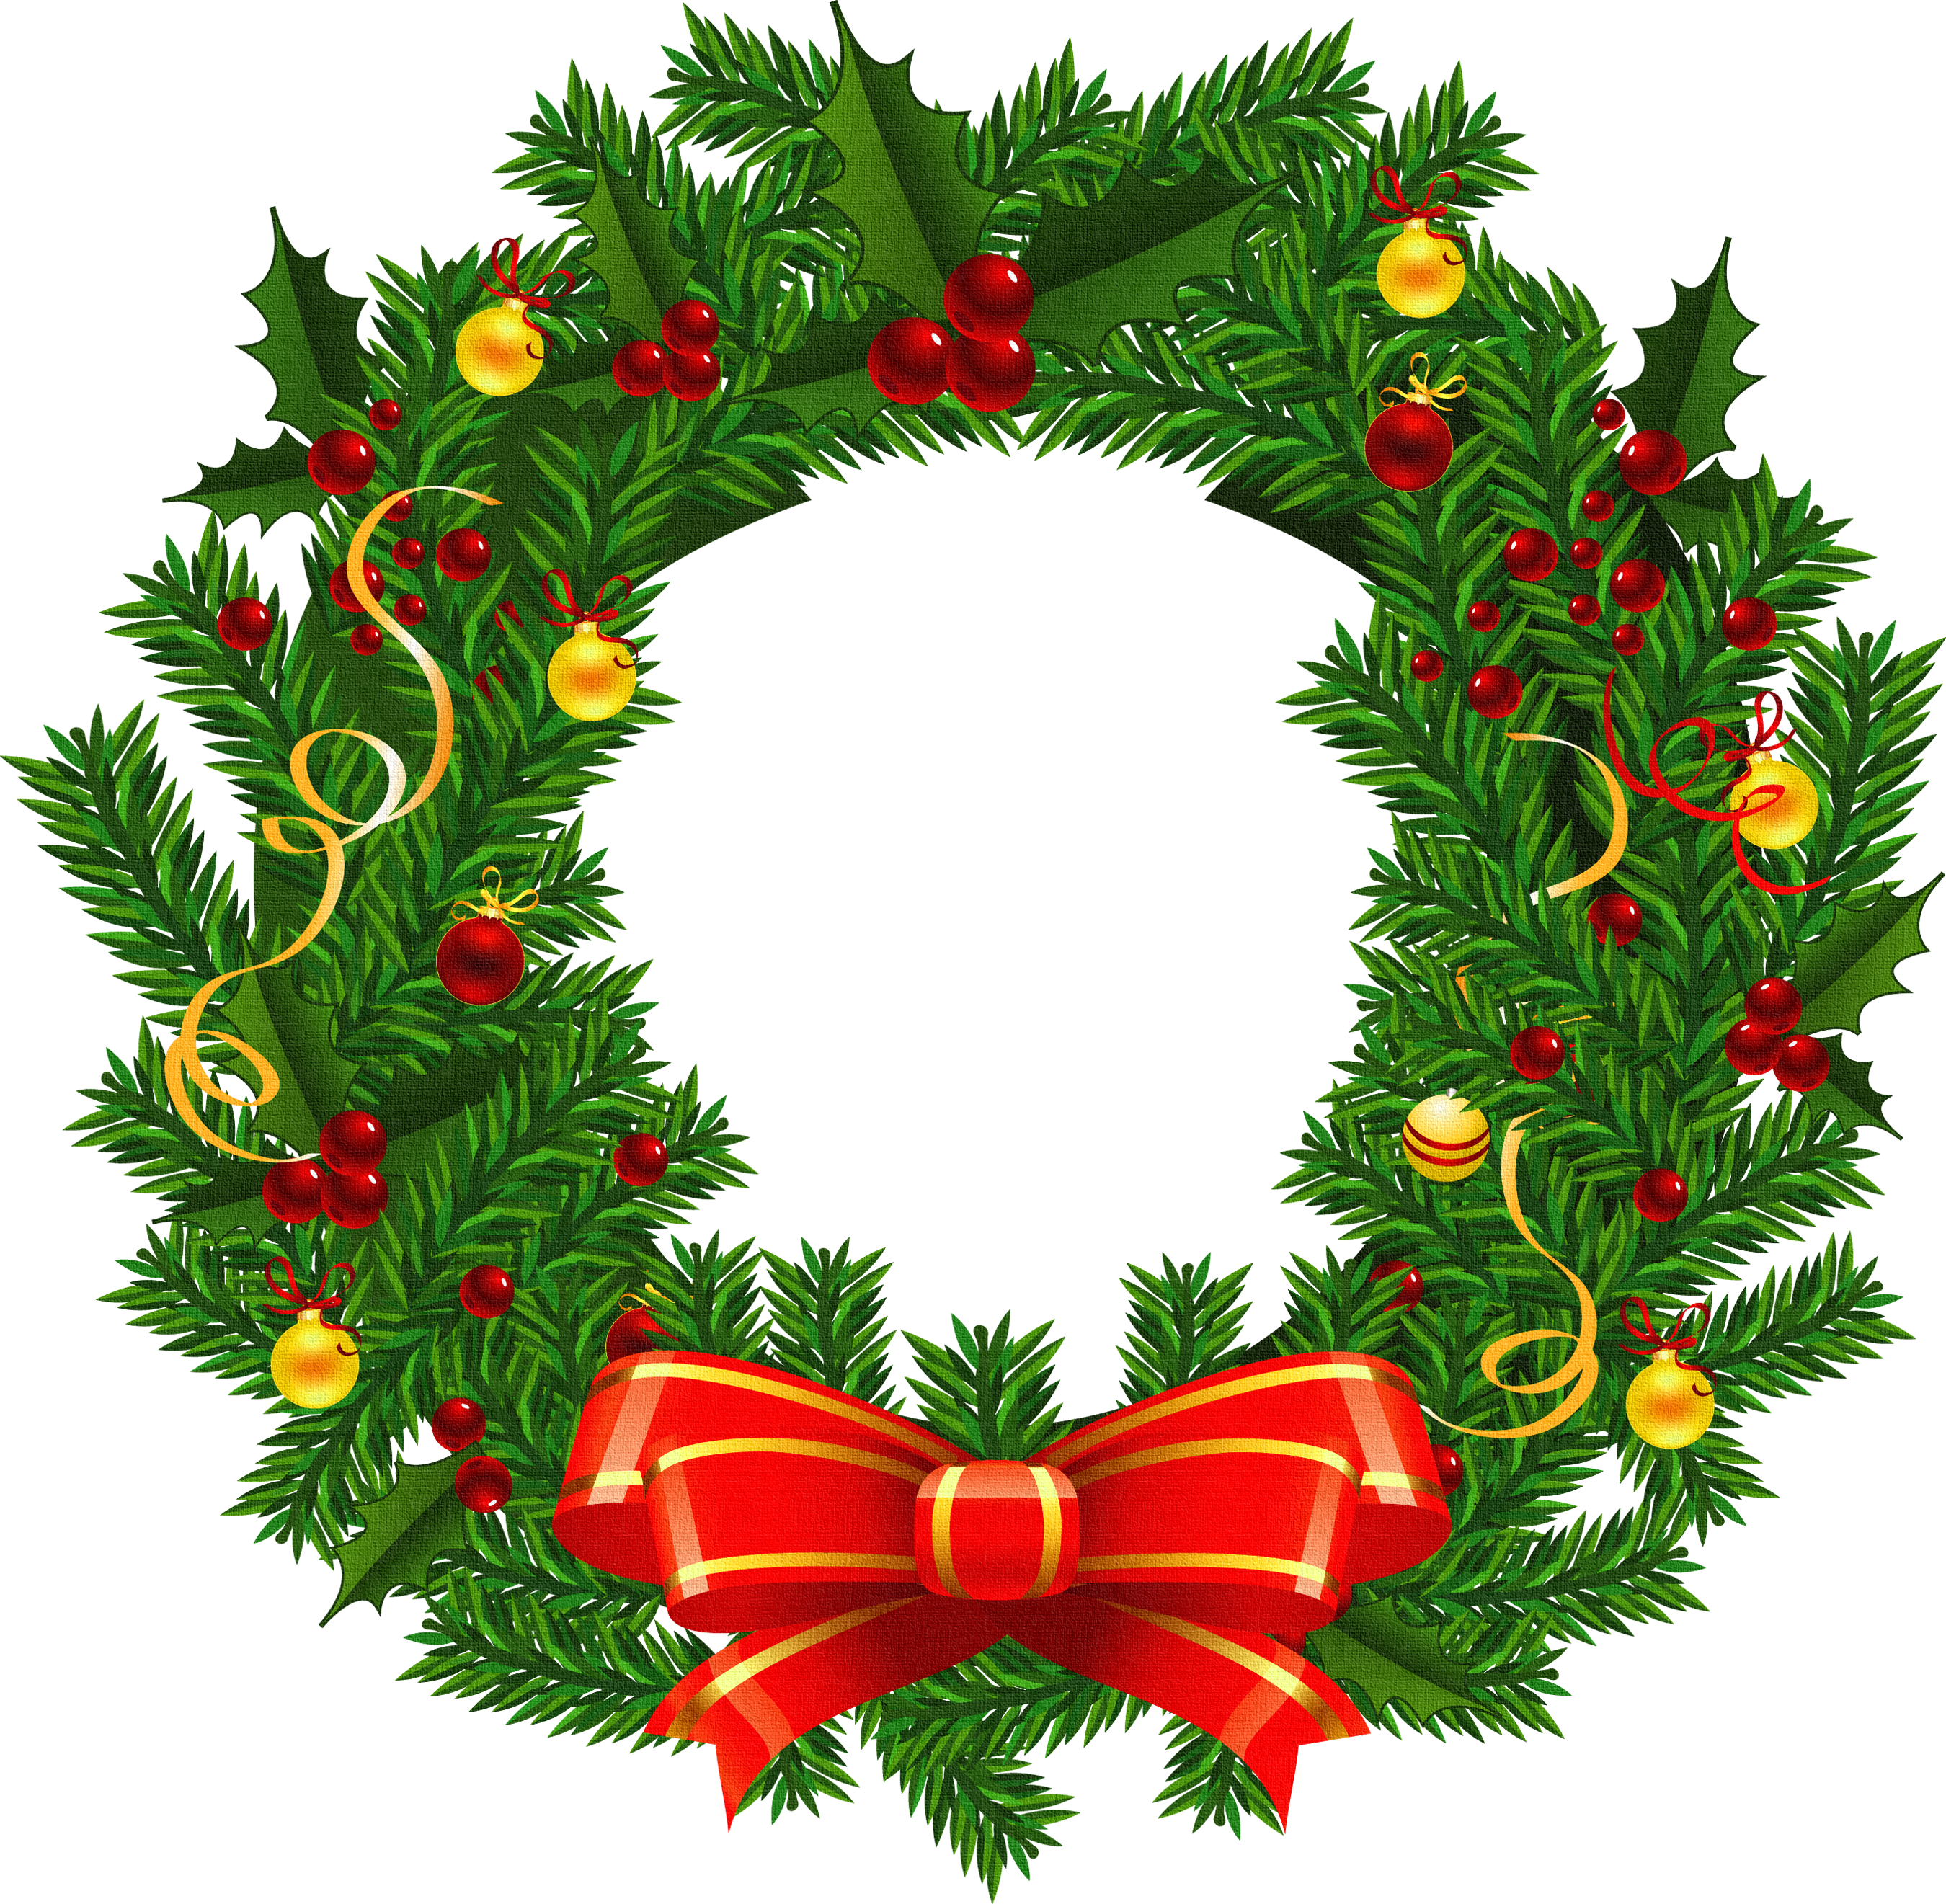 freeuse Wreath clipart transparent background. Holiday reservation davis cemetery